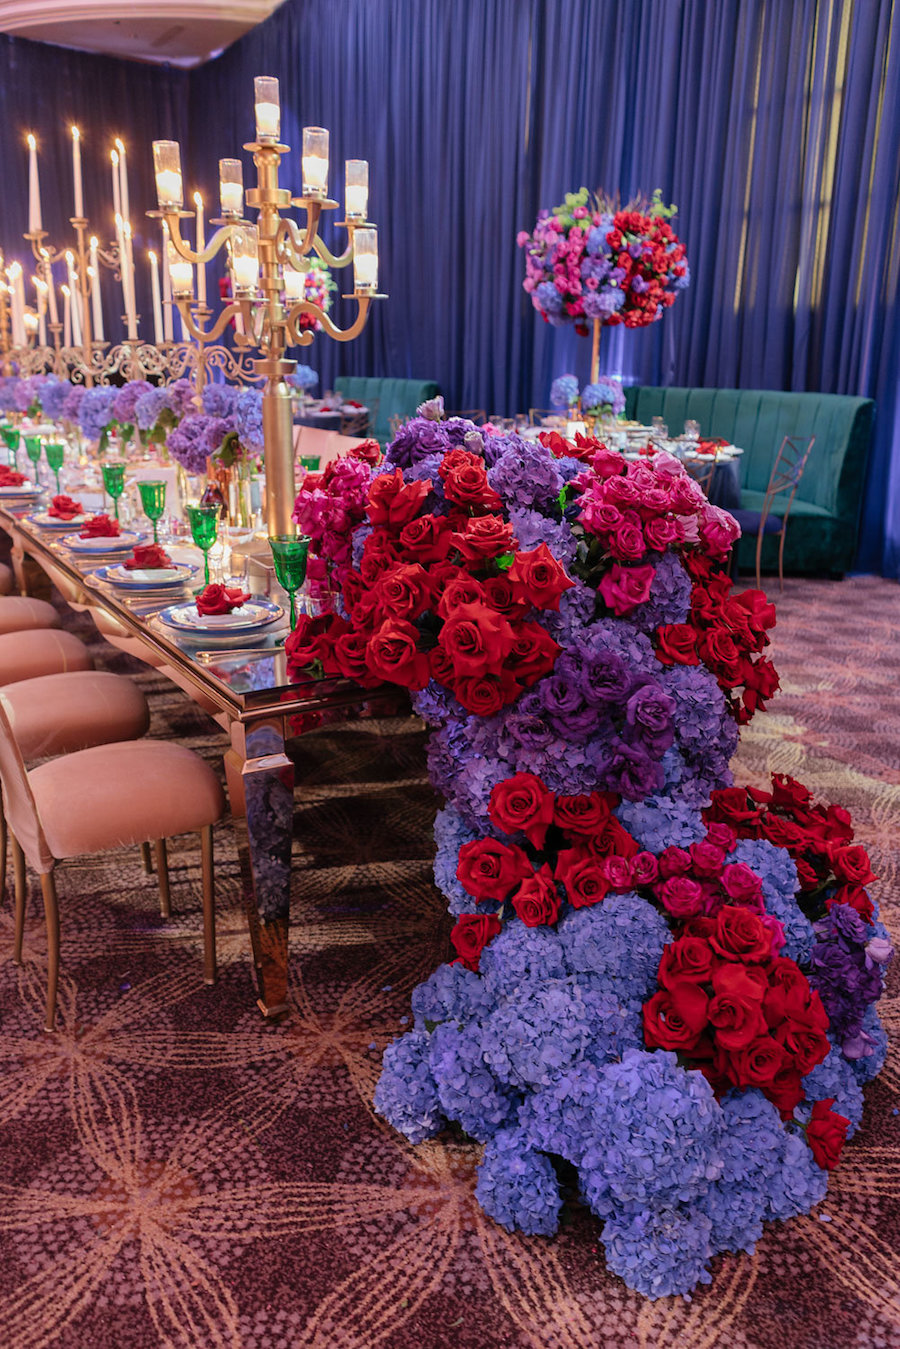 Sophisticated Floral Fairytale Featured on Strictly Weddings1